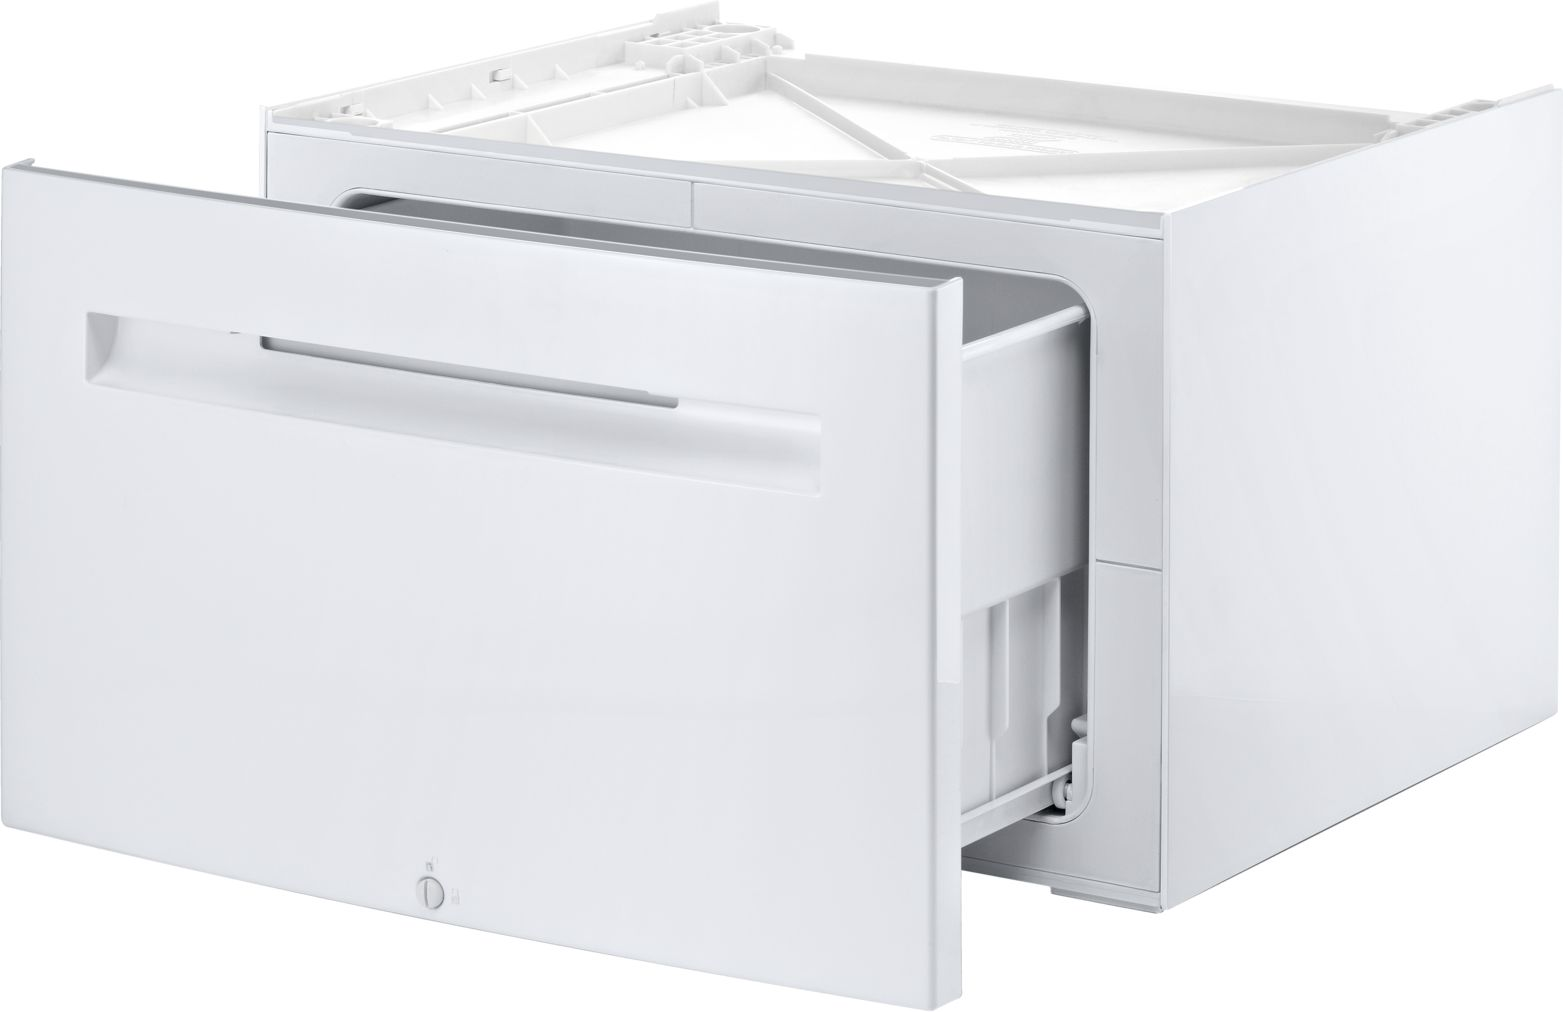 WMZ20500Pedestal with Pull-Out Drawer24